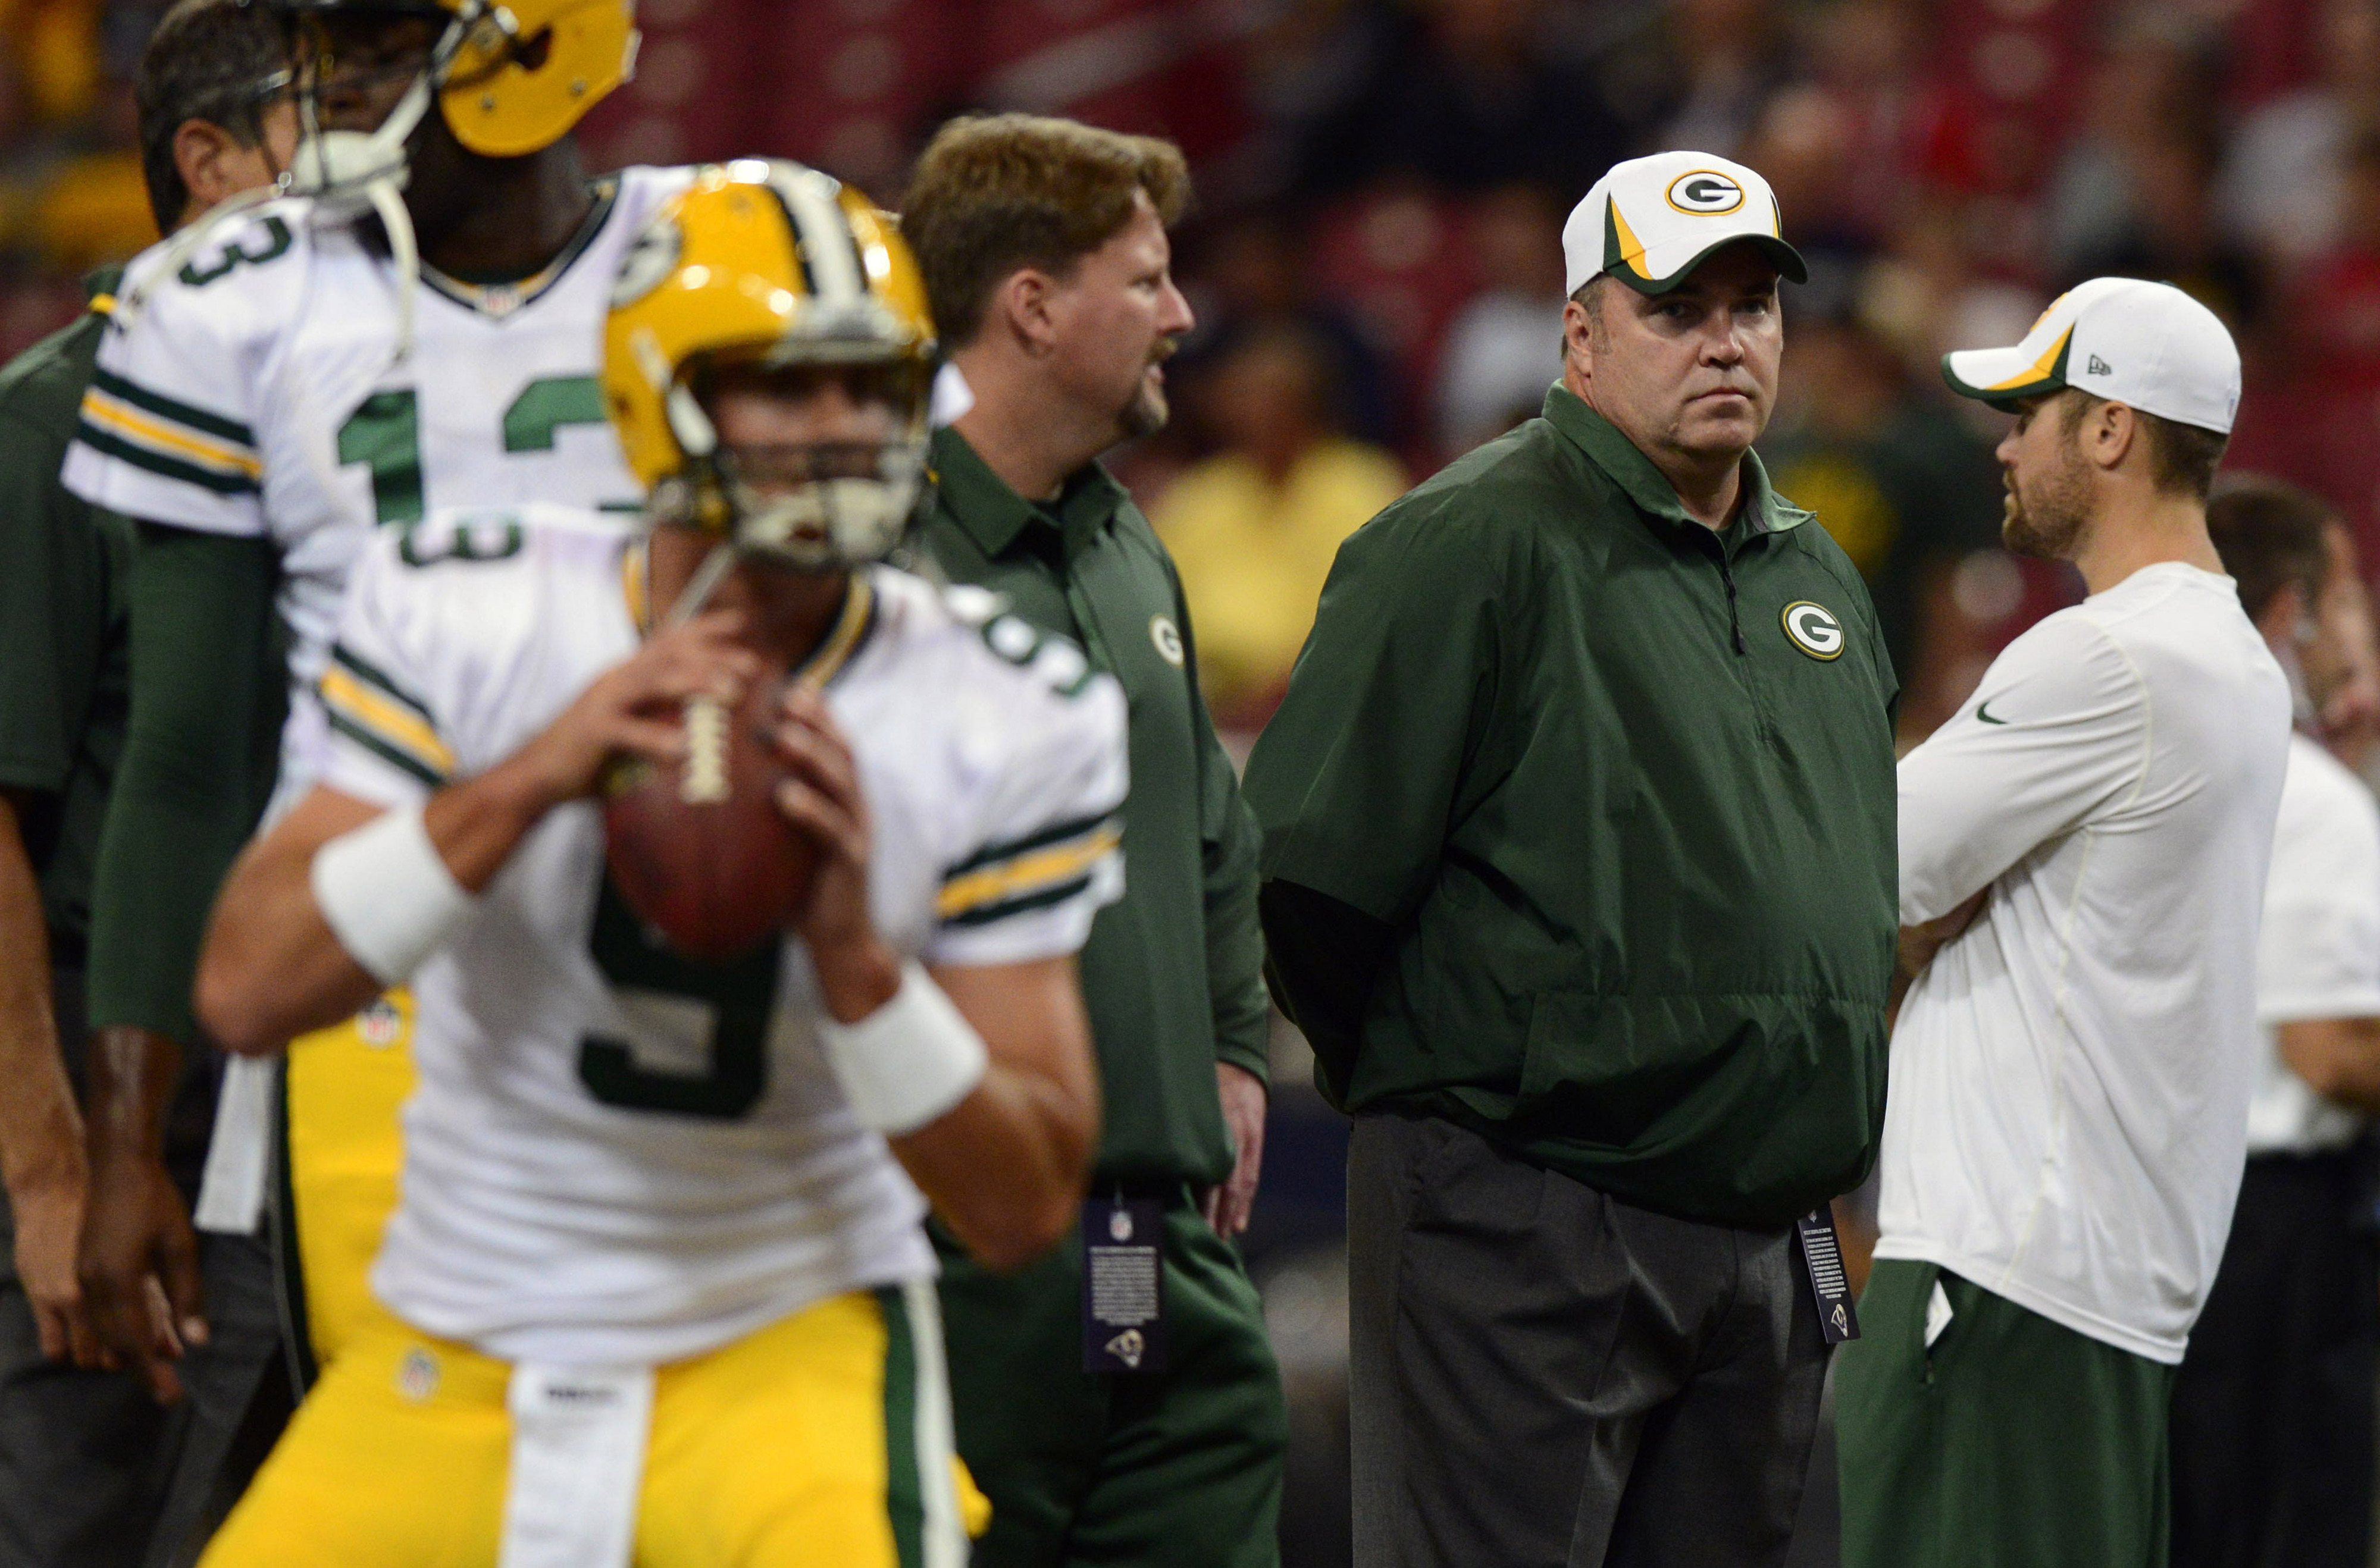 Coach McCarthy looks on as B.J. Coleman (9) and Vince Young (13) warm up before the Packers preseason game against the Rams on August 17th